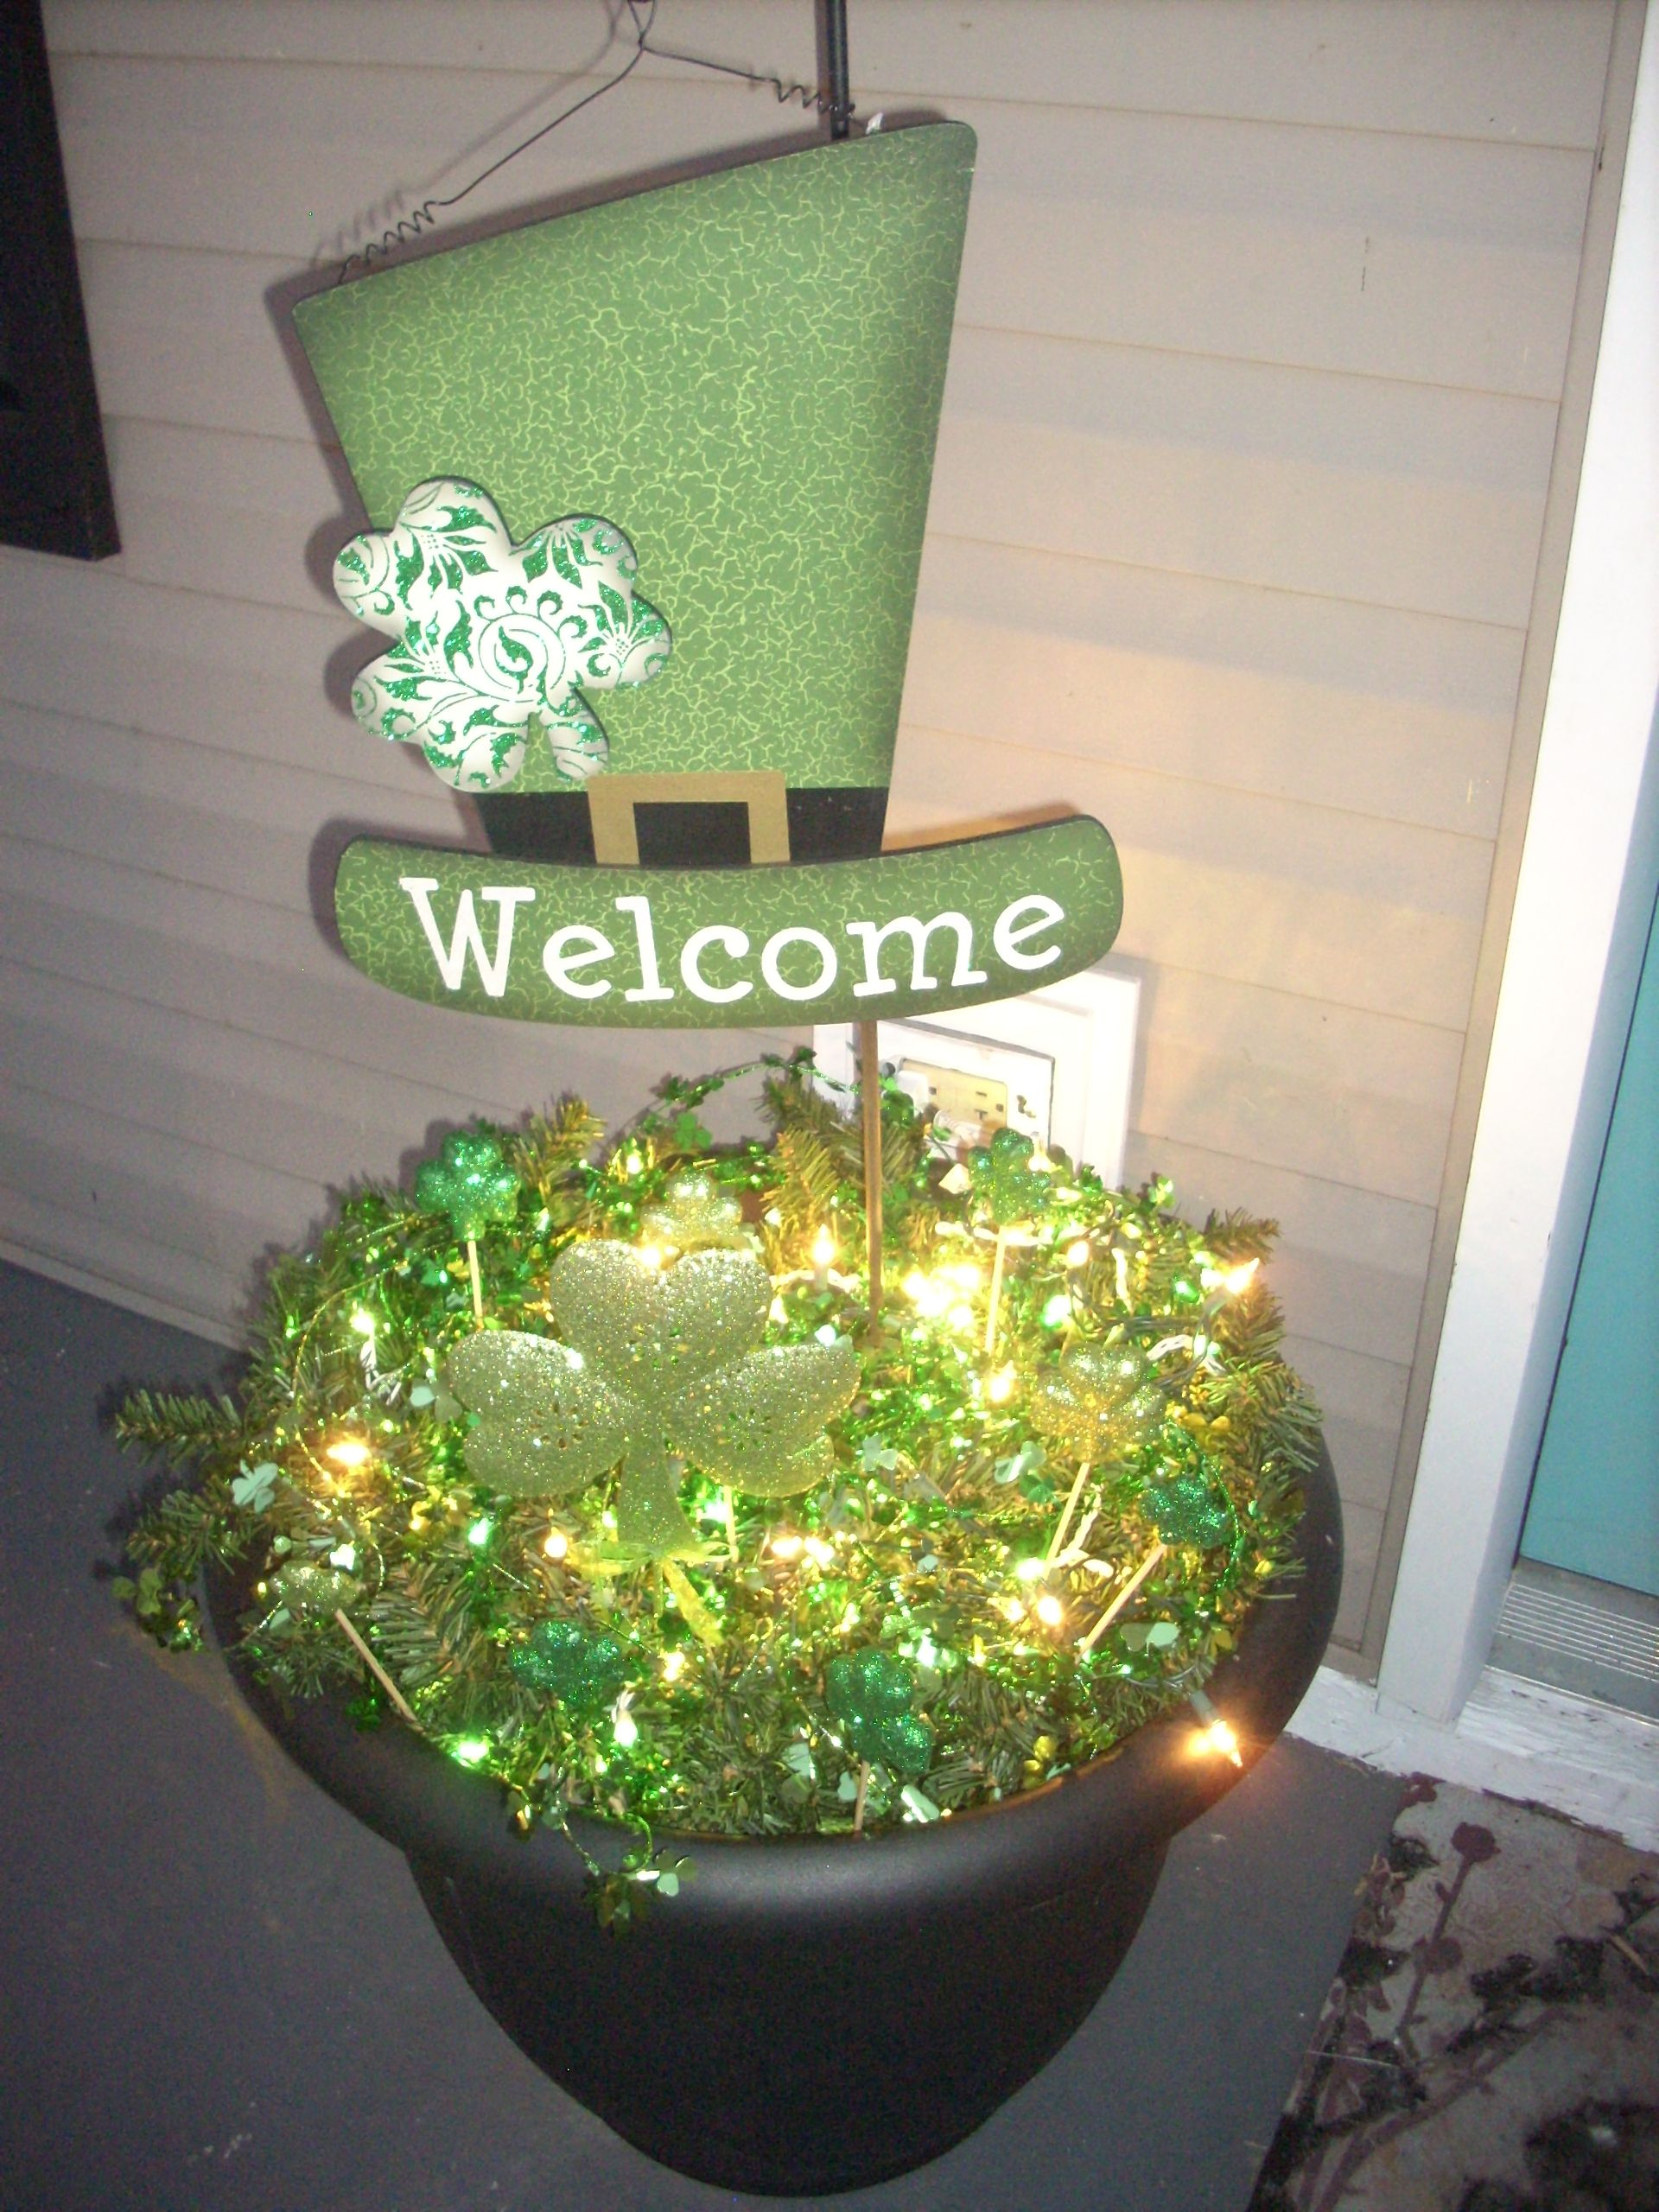 St. Patricks Day Porch decoration I made. Shown at night with